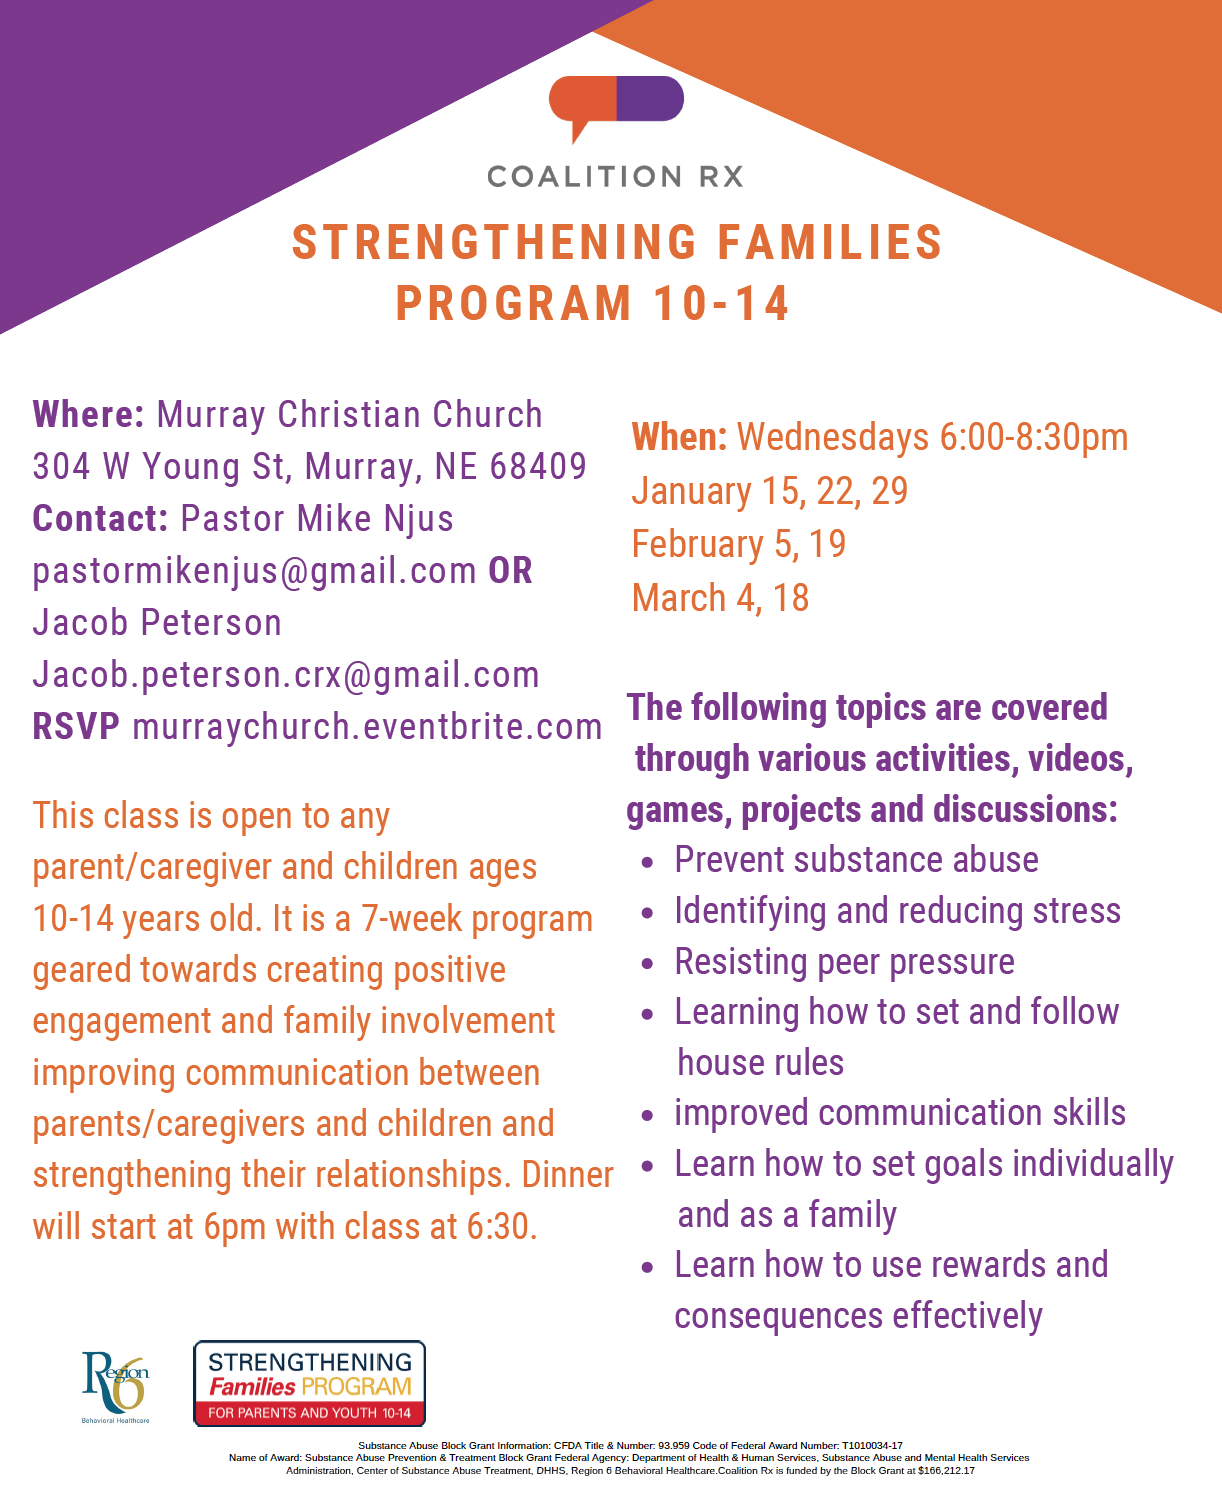 Strengthening Families Program 10-14 hosted by Murray Christian Church